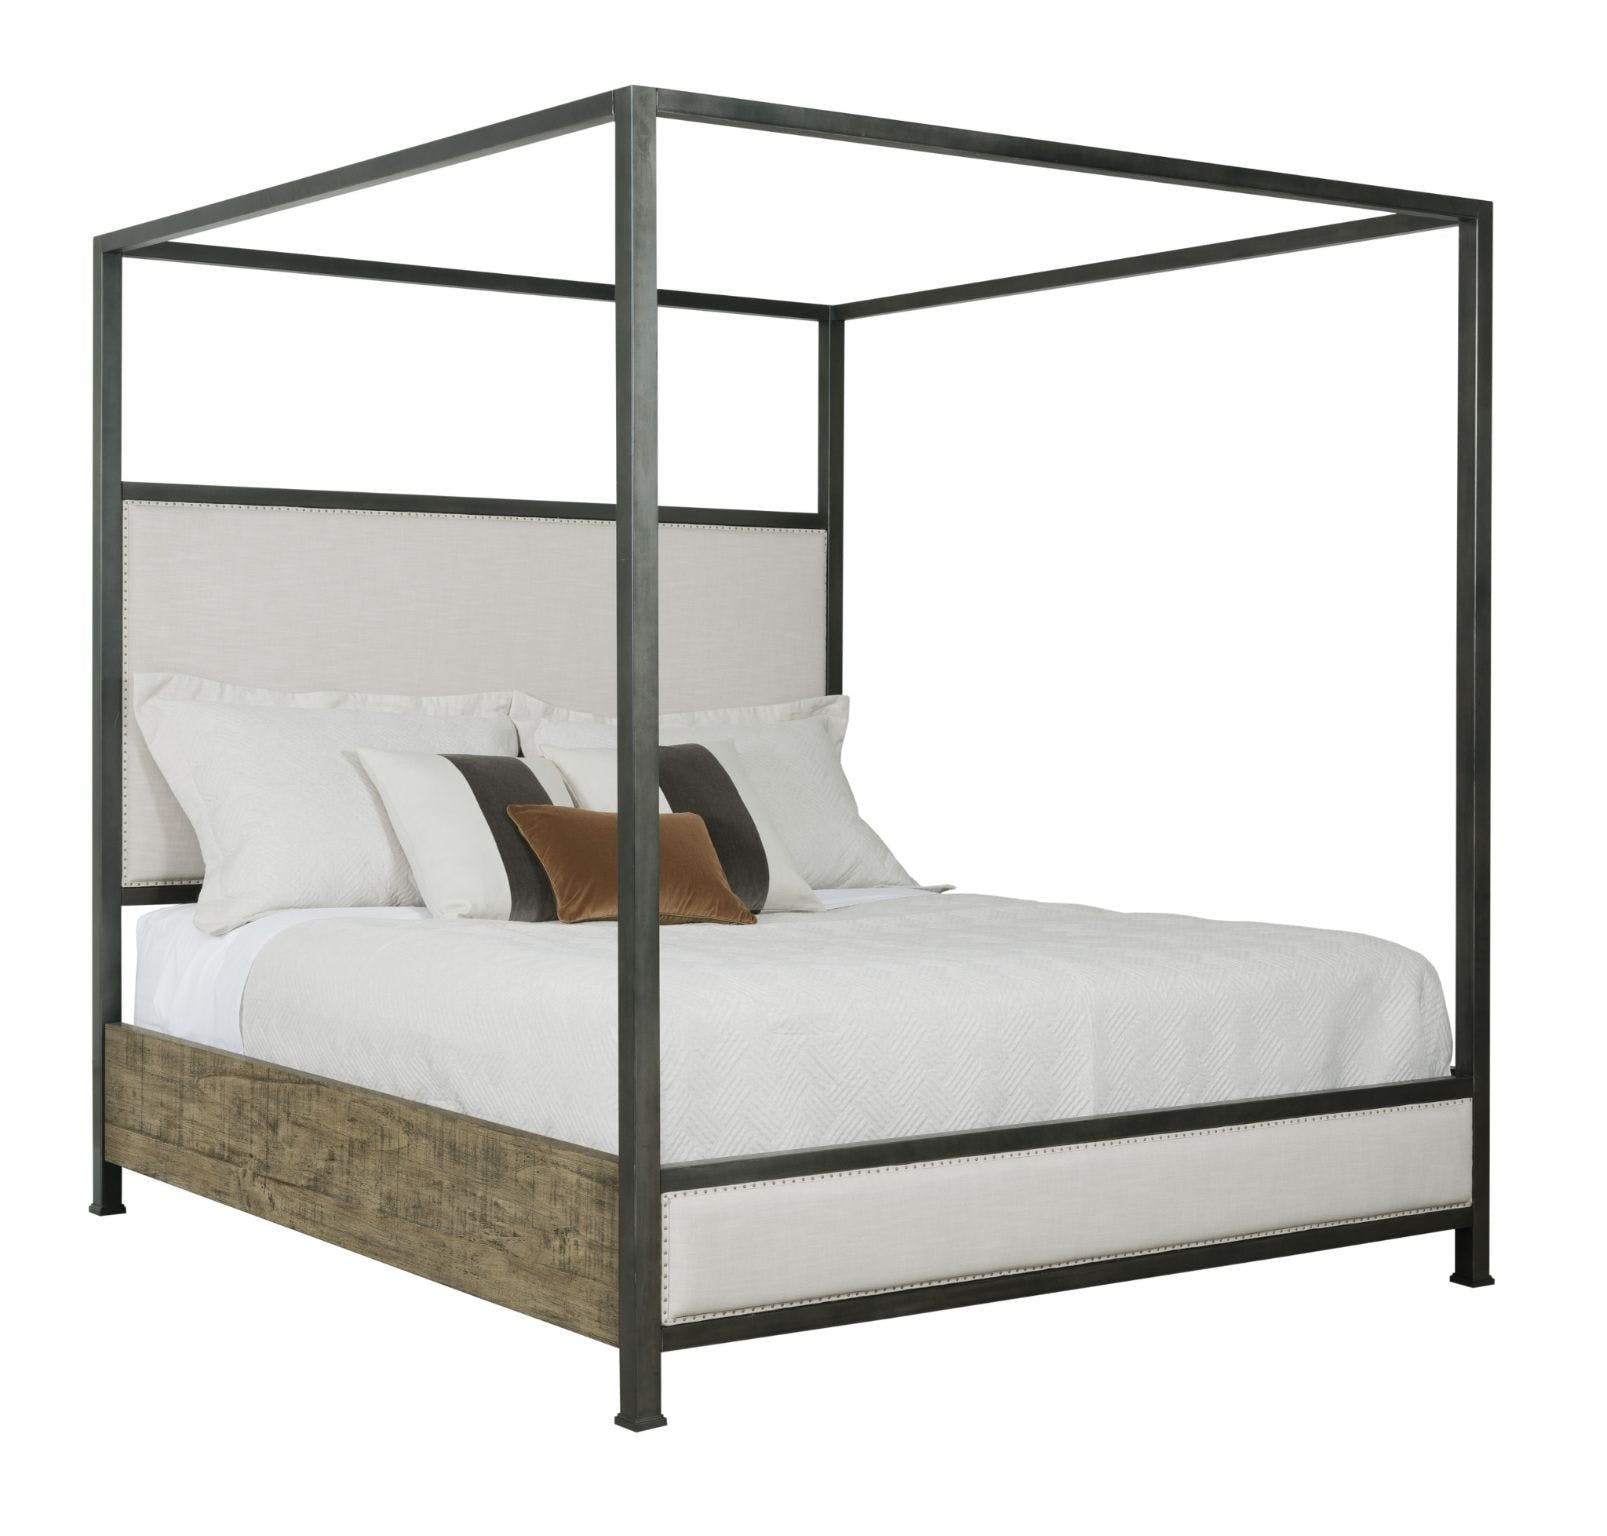 Shelley Canopy King Bed Complete Ki706397sp